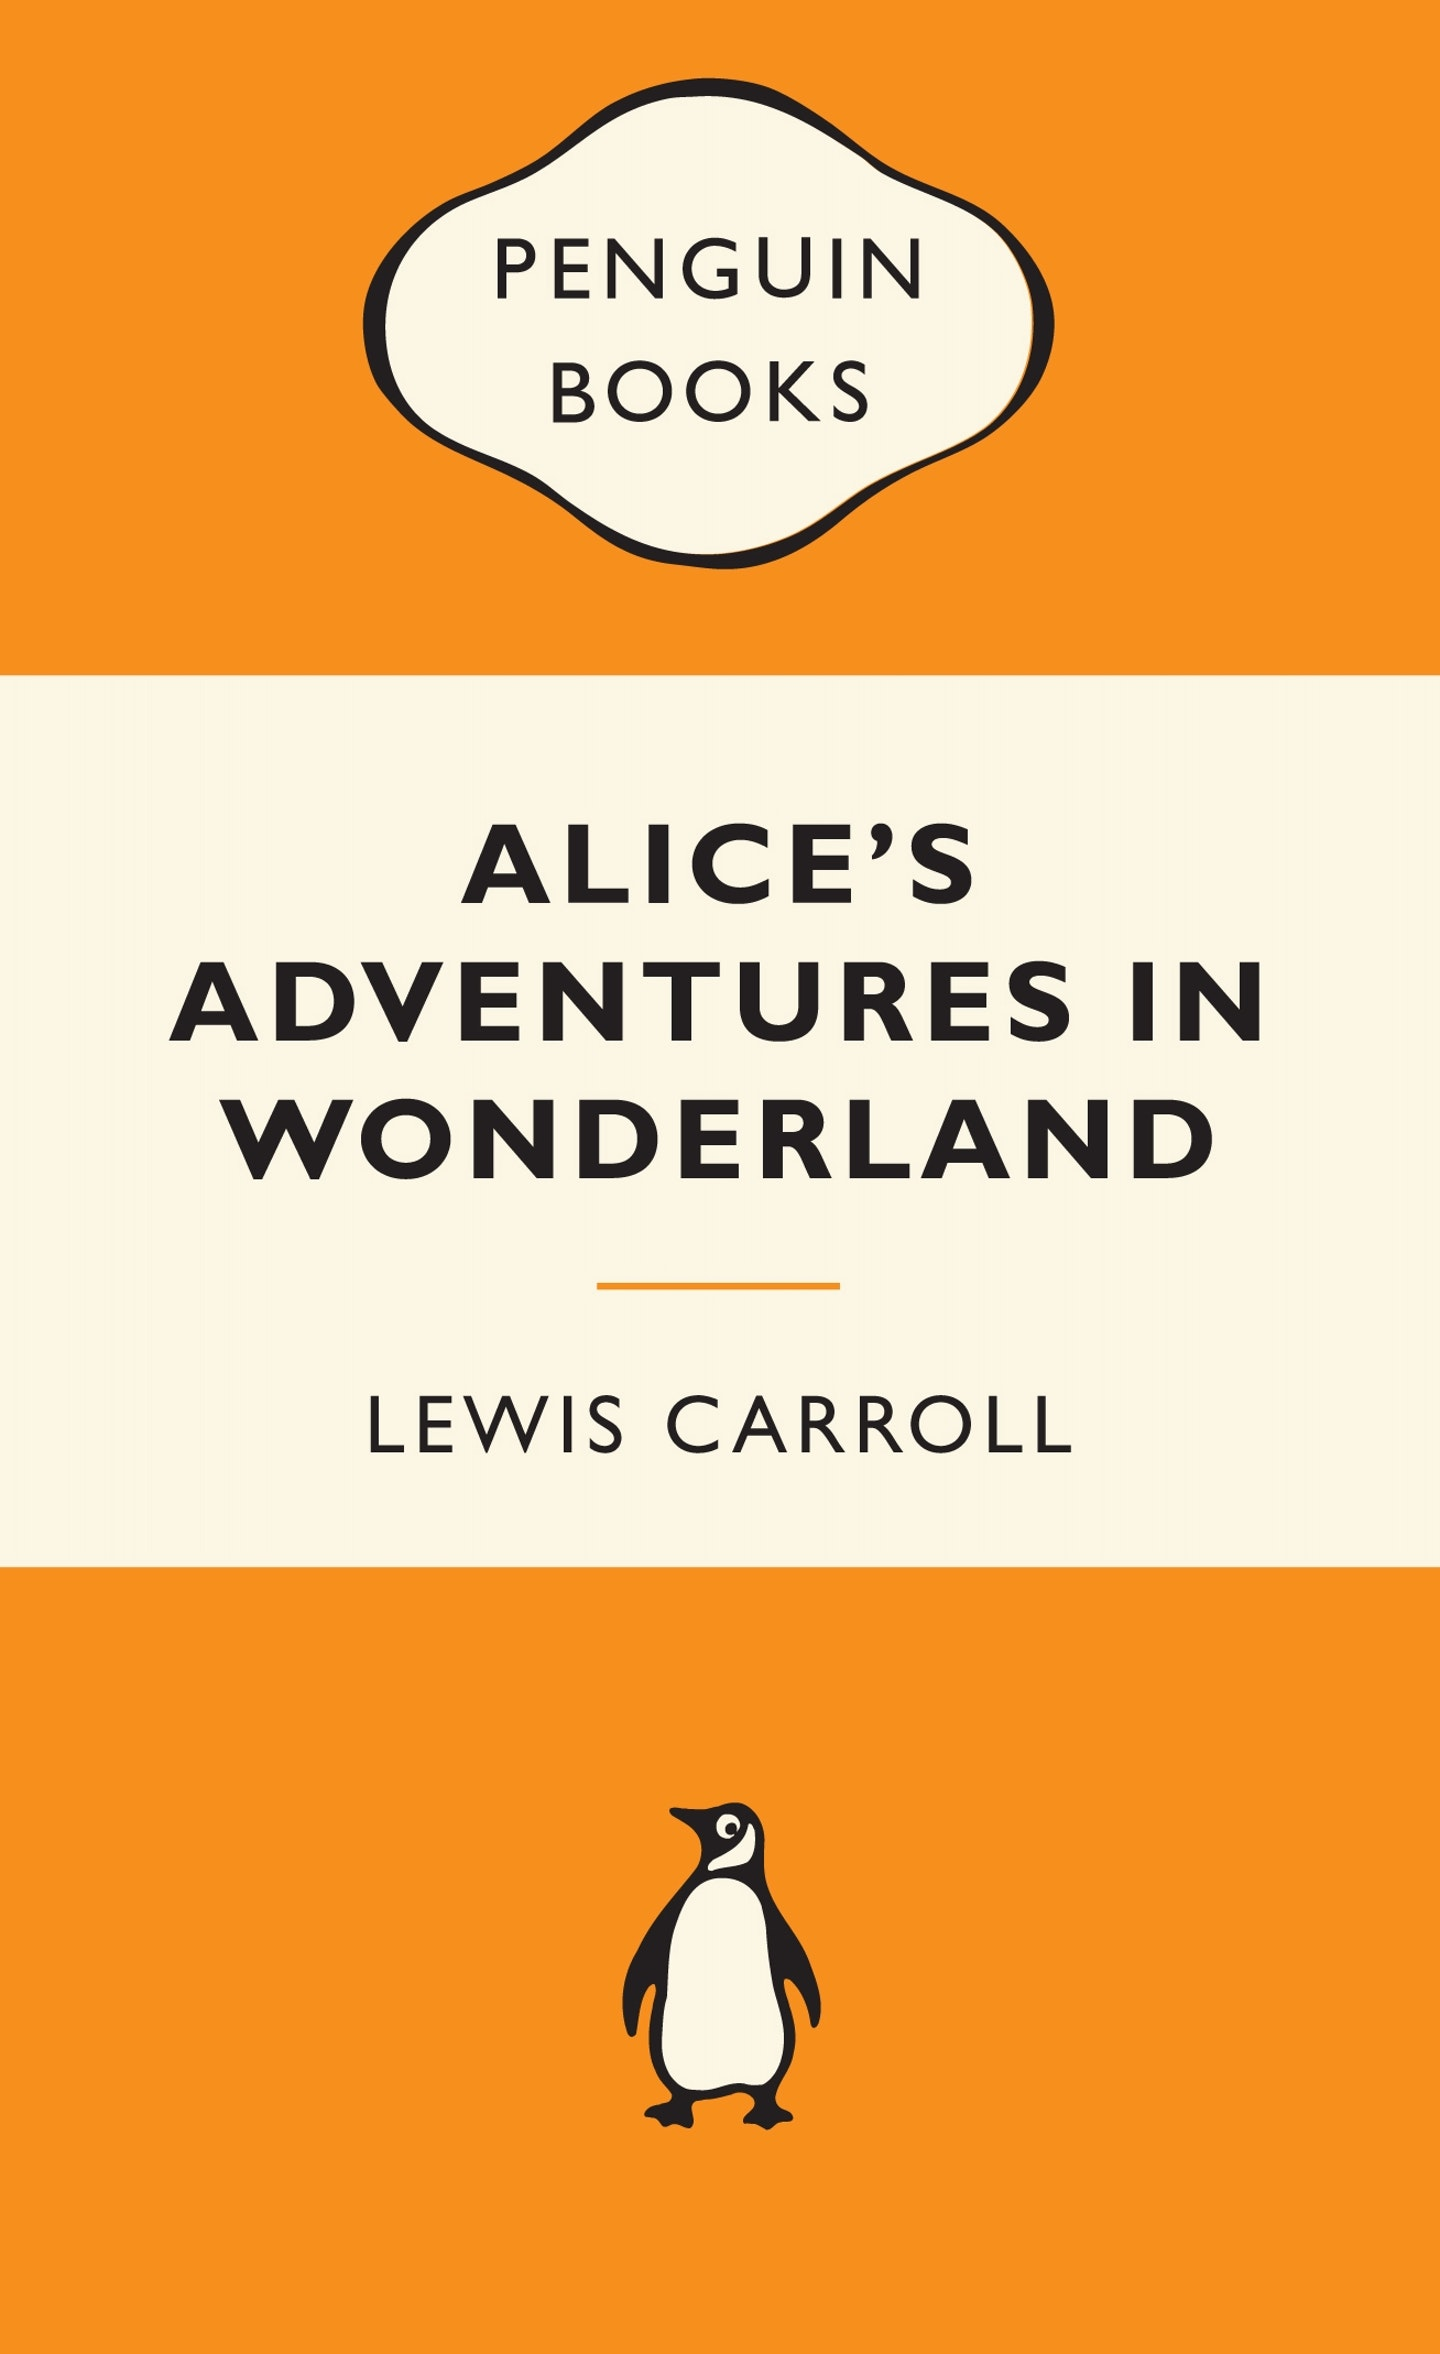 Penguin Book Cover : Alice s adventures in wonderland popular penguins